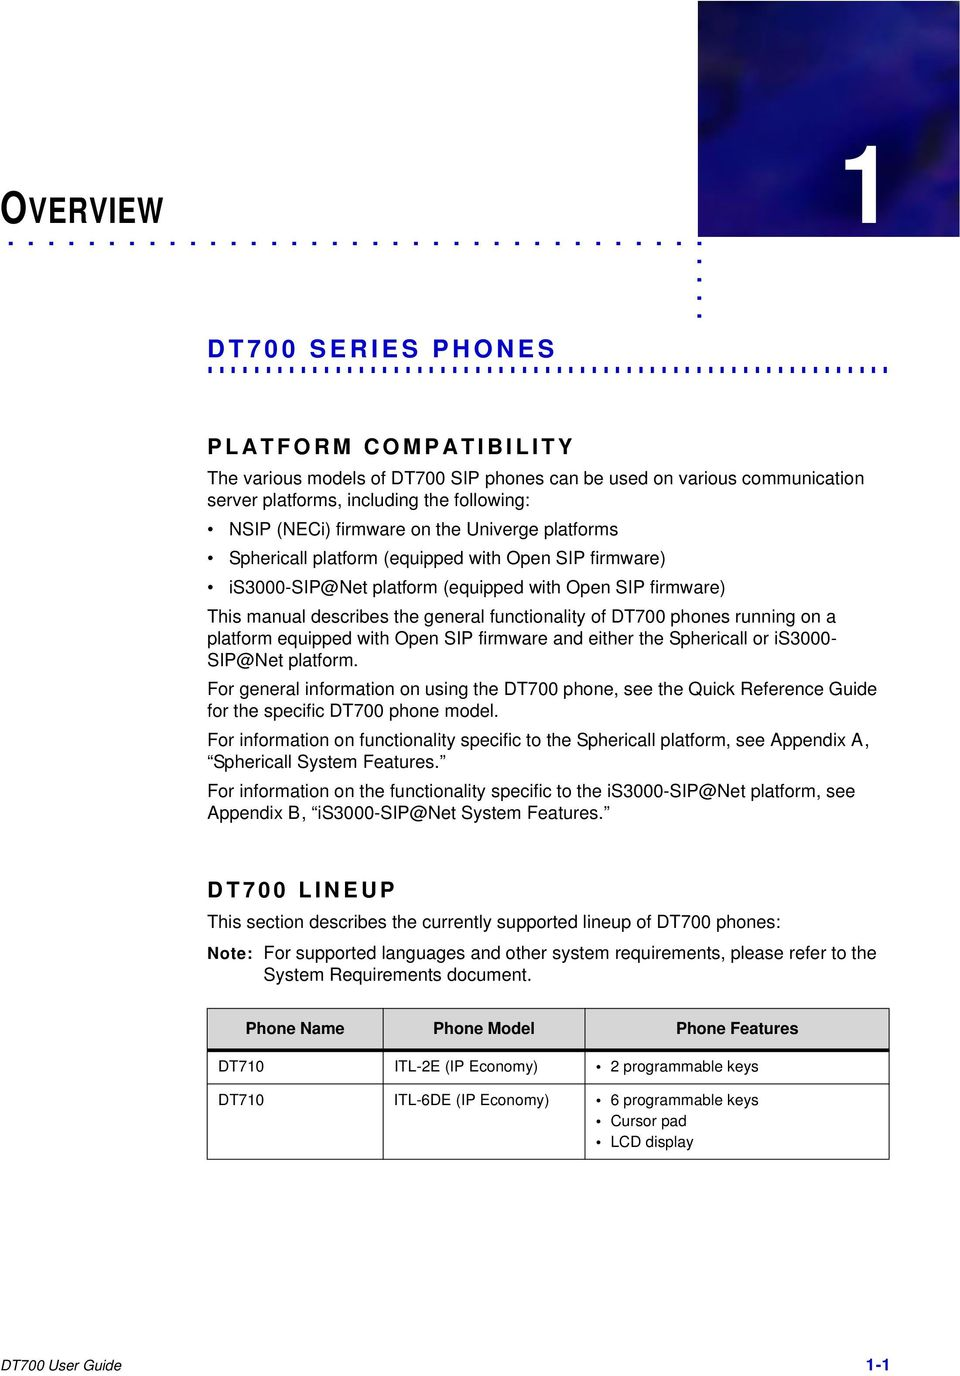 DT700 Phone User Manual For UNIVERGE Sphericall and Platforms - PDF